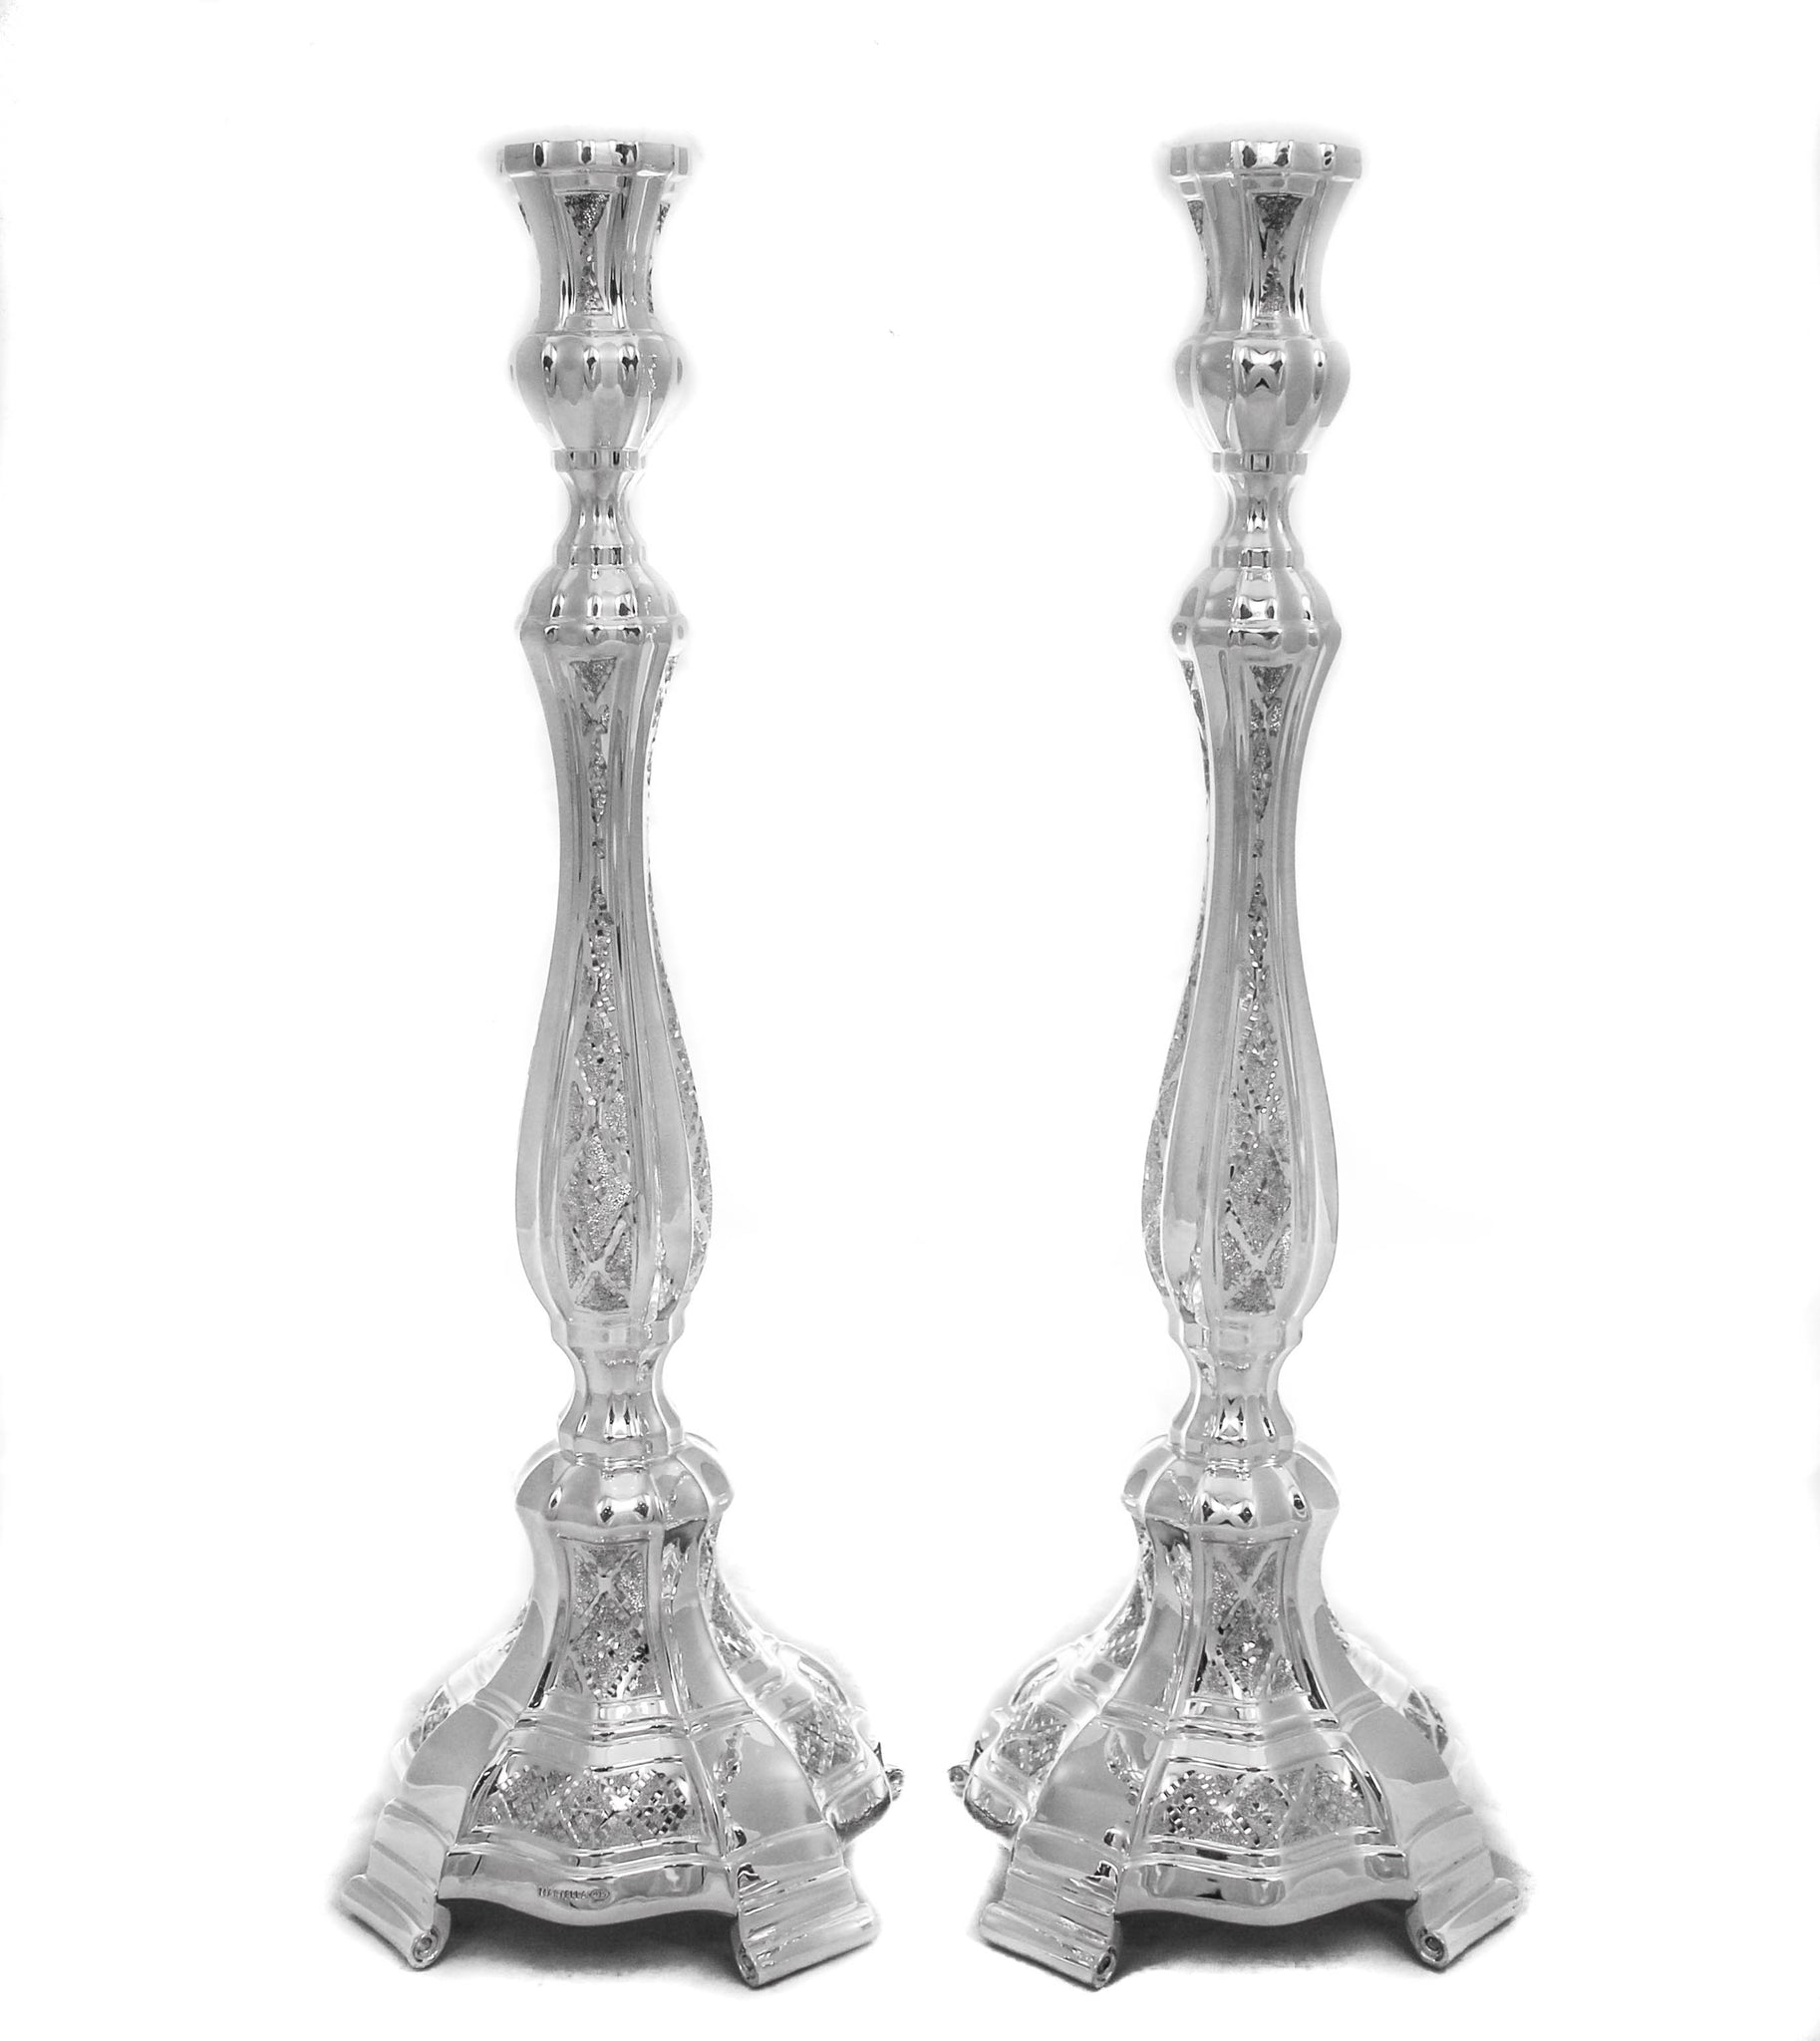 FINE 925 STERLING SILVER HANDCRAFTED SHINY SLEEK DIAMOND CUT ROUND CANDLESTICKS